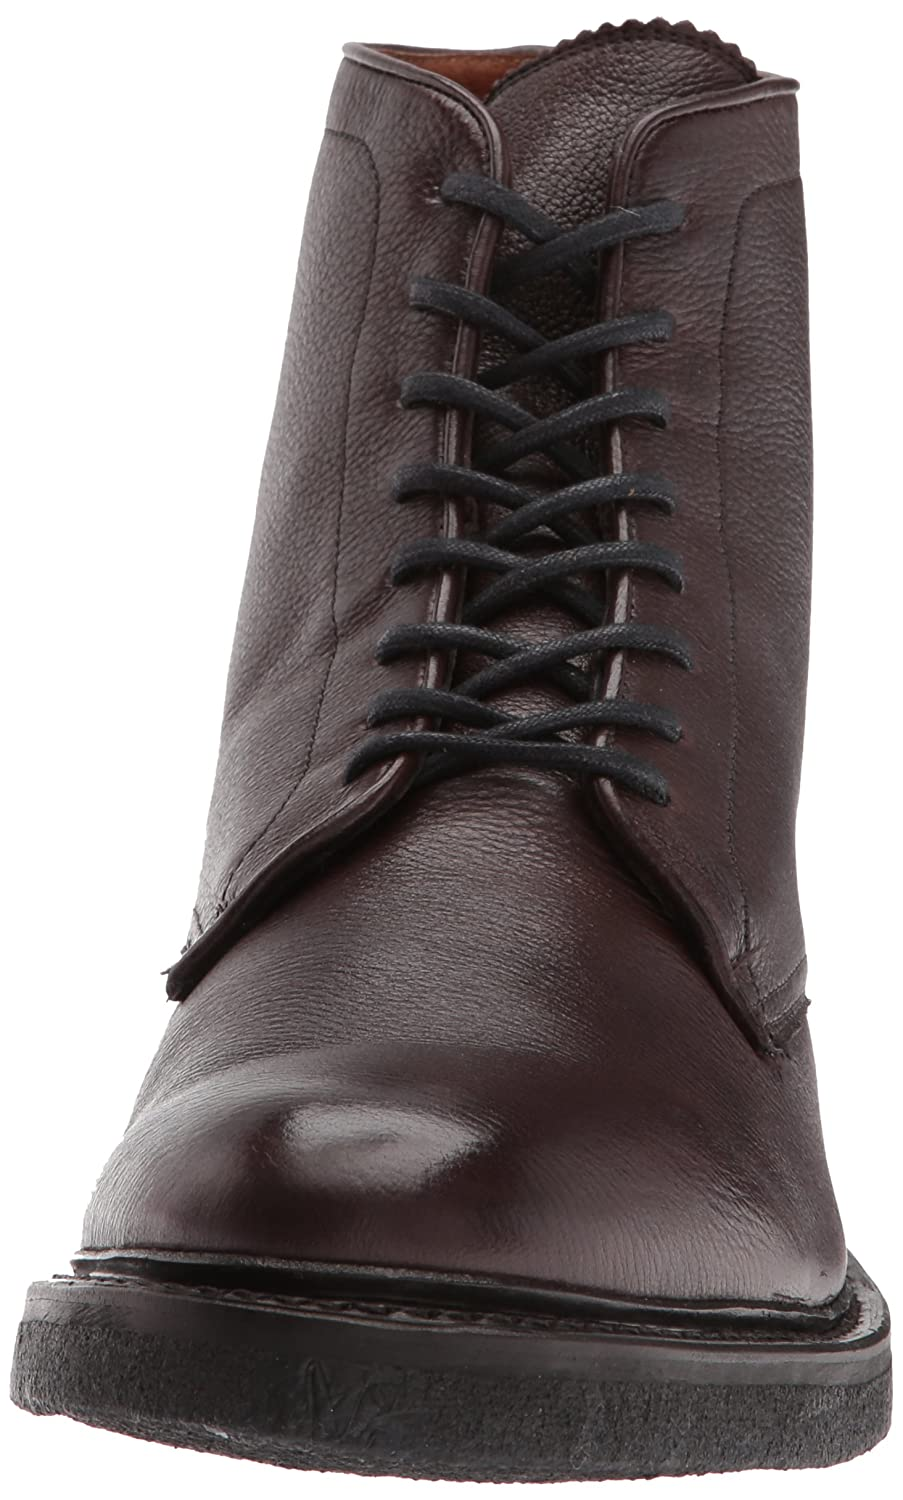 FRYE Mens Country Lace Up Boot Boots Shoes